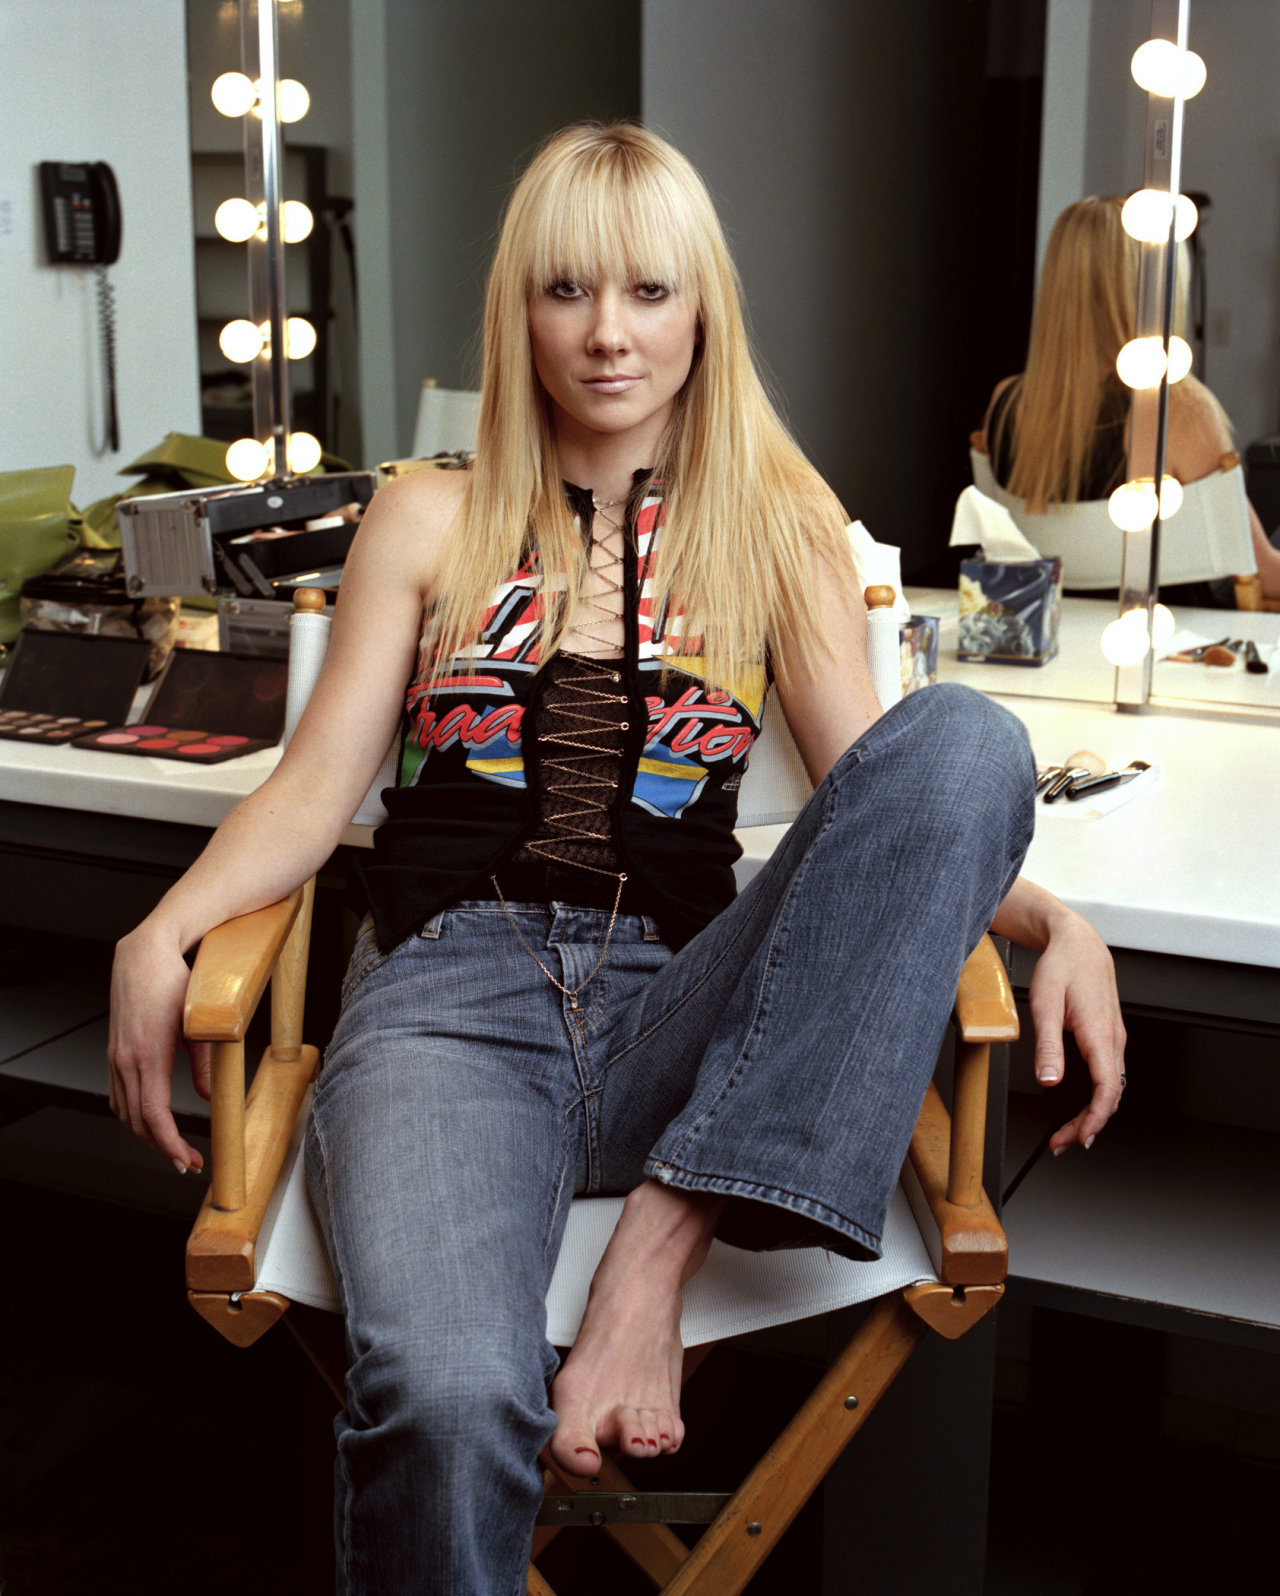 image Anne heche return to paradise